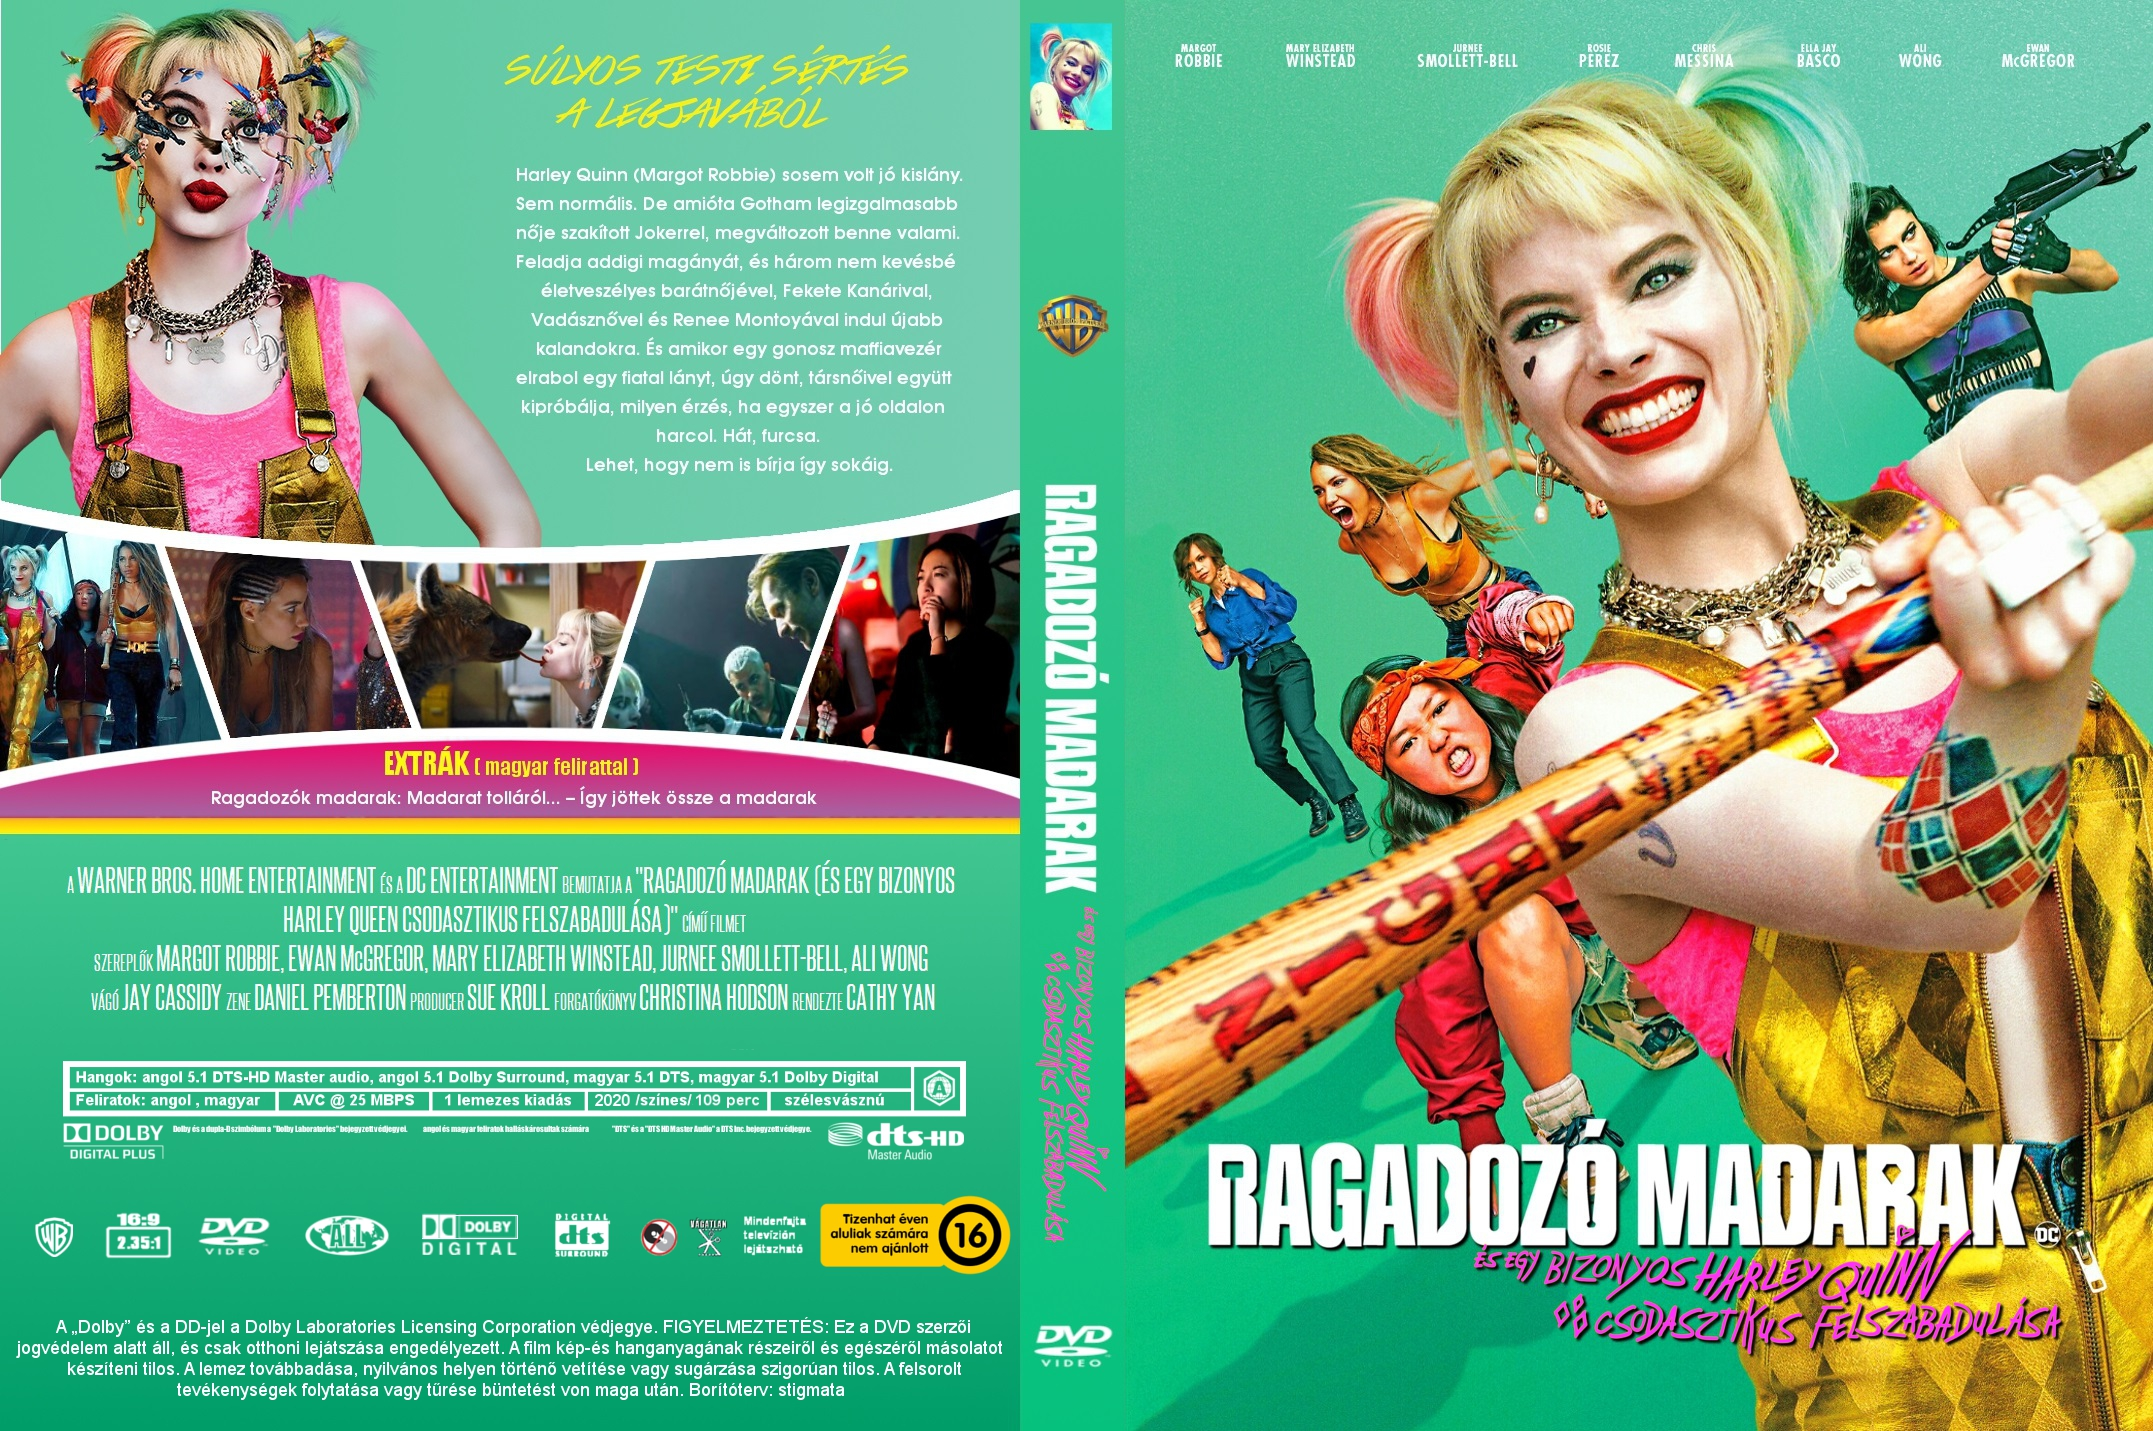 Covers Box Sk Birds Of Prey And The Fantabulous Emancipation Of One Harley Quinn High Quality Dvd Blueray Movie